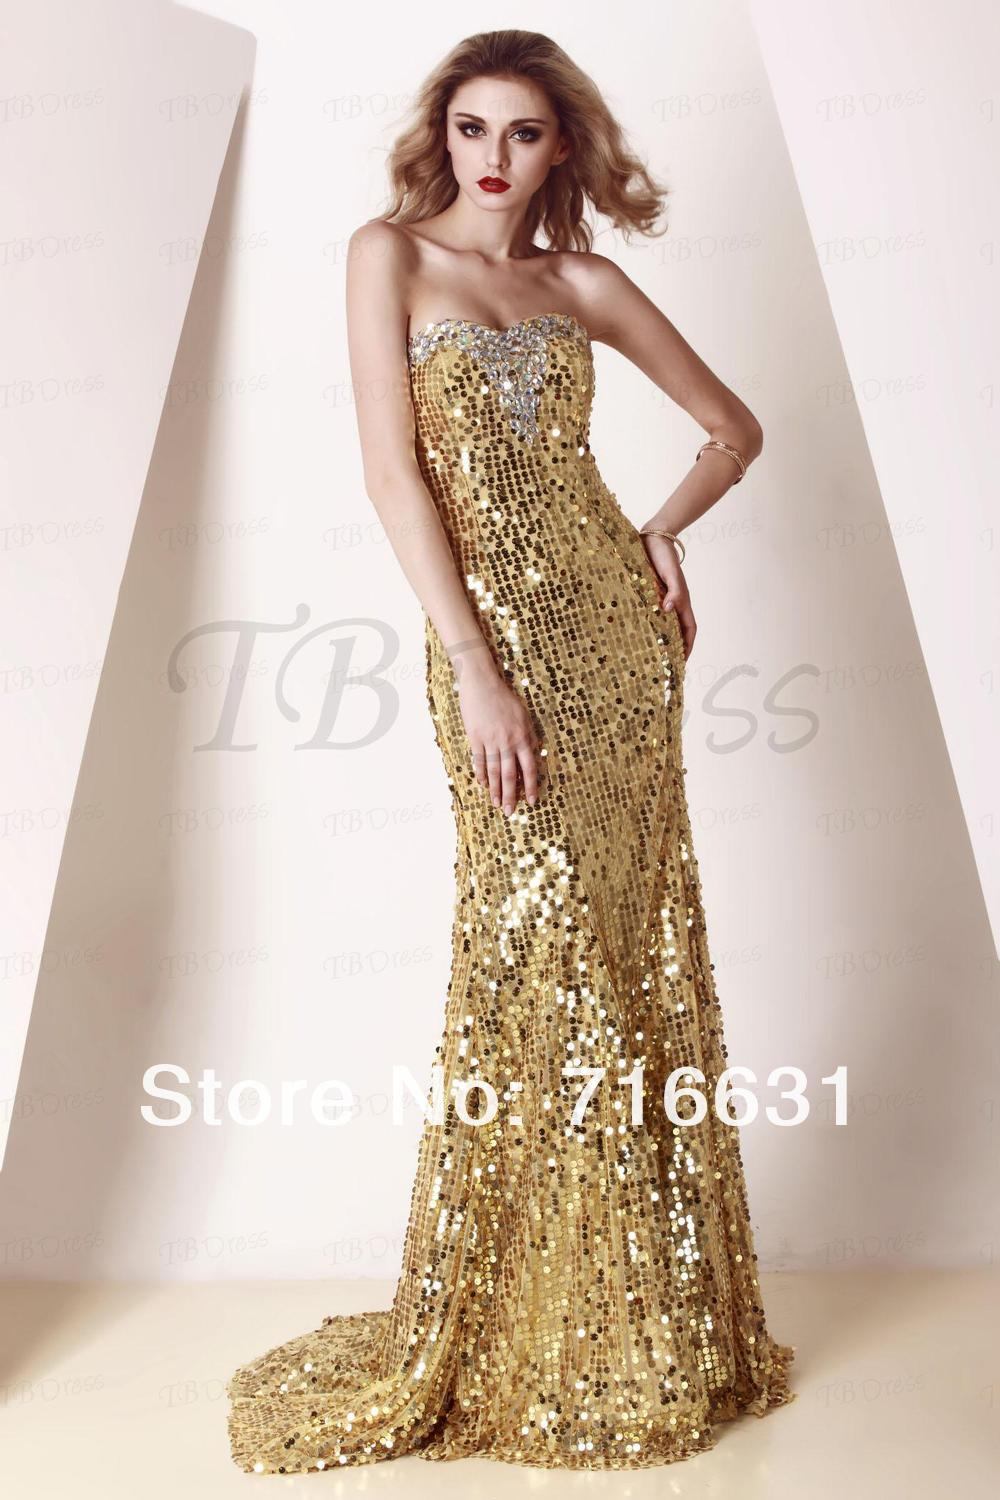 Sequined Gowns Affordable And Fashion Outlet Review